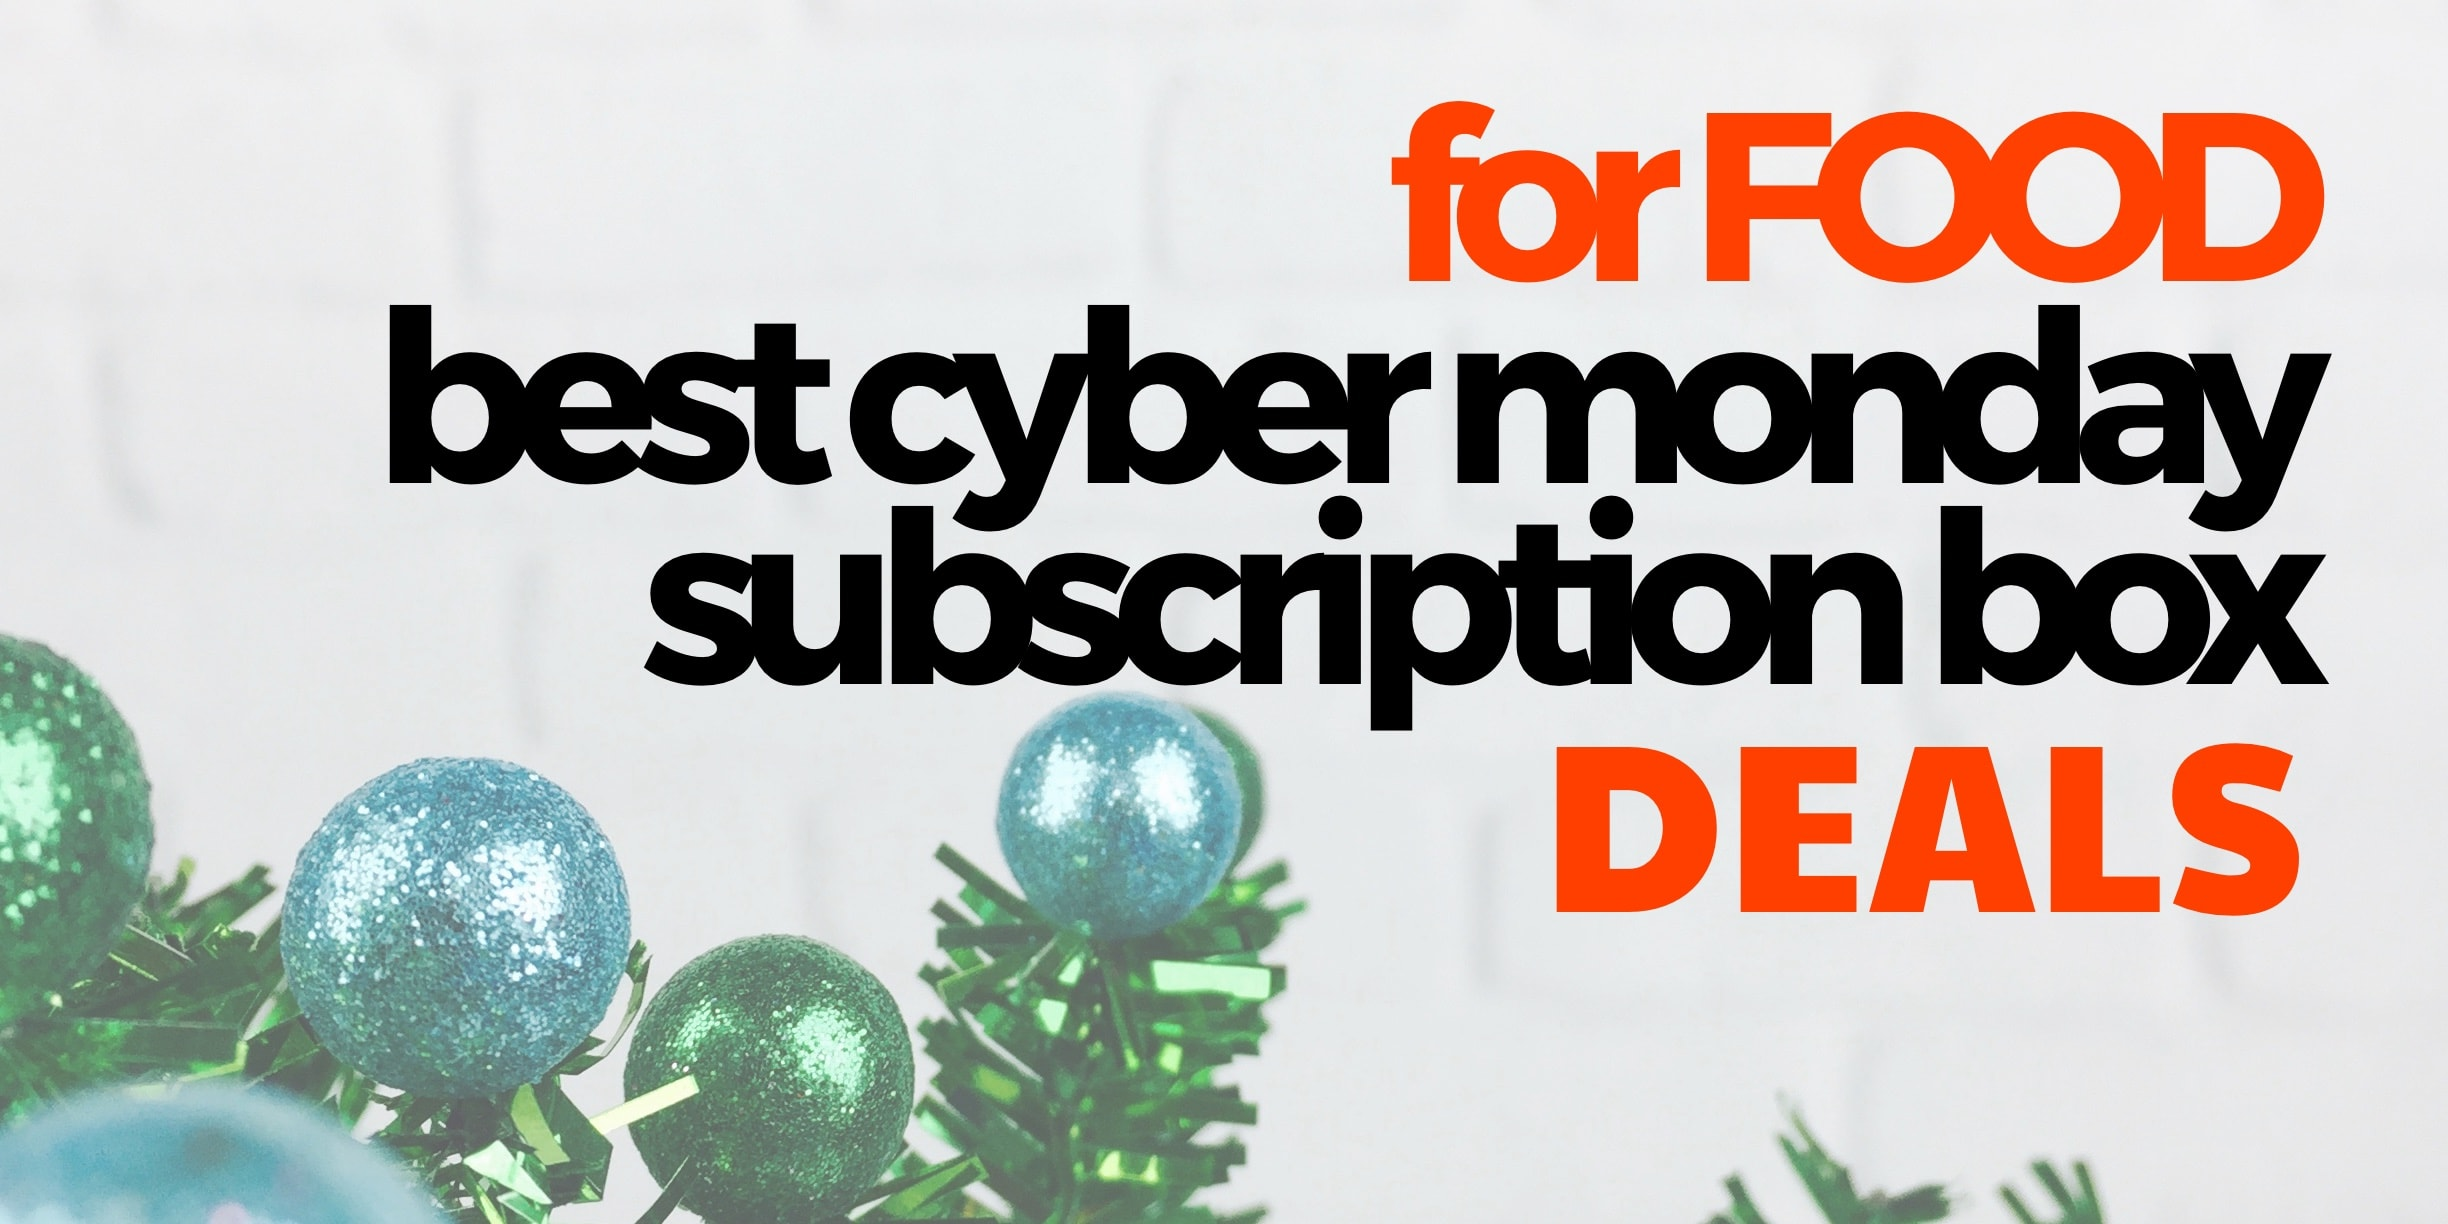 The Best Food Cyber Monday Subscription Box Deals!